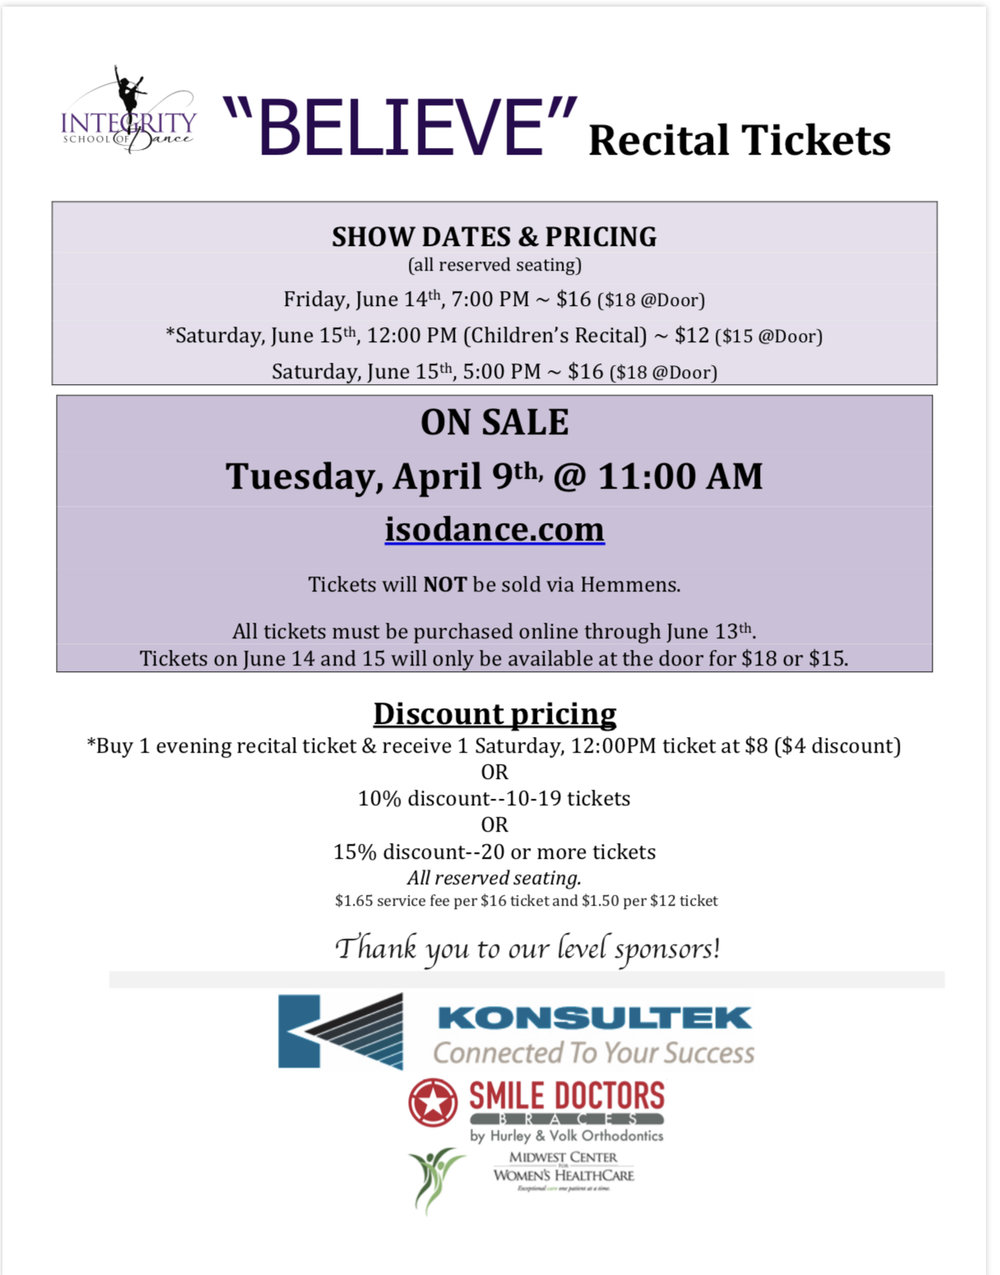 Click image to view Recital Tickets Information